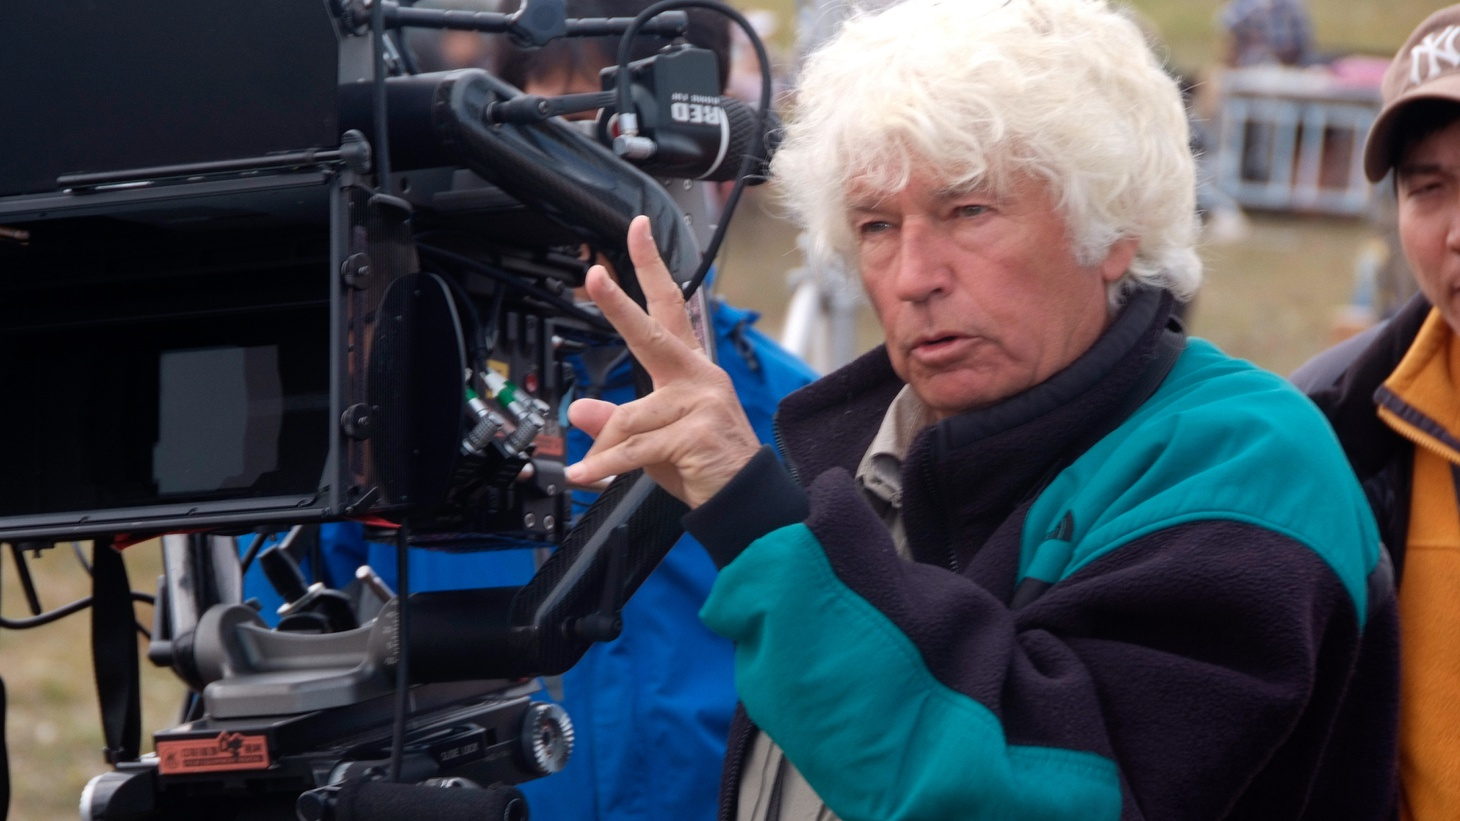 The 1997 movie Seven Years in Tibet was banned in China, and its director Jean-Jacques Annaud barred from entering the country. A decade later, China came to Annaud and asked him to direct Wolf Totem, an epic Chinese movie. Annaud tells us what changed.